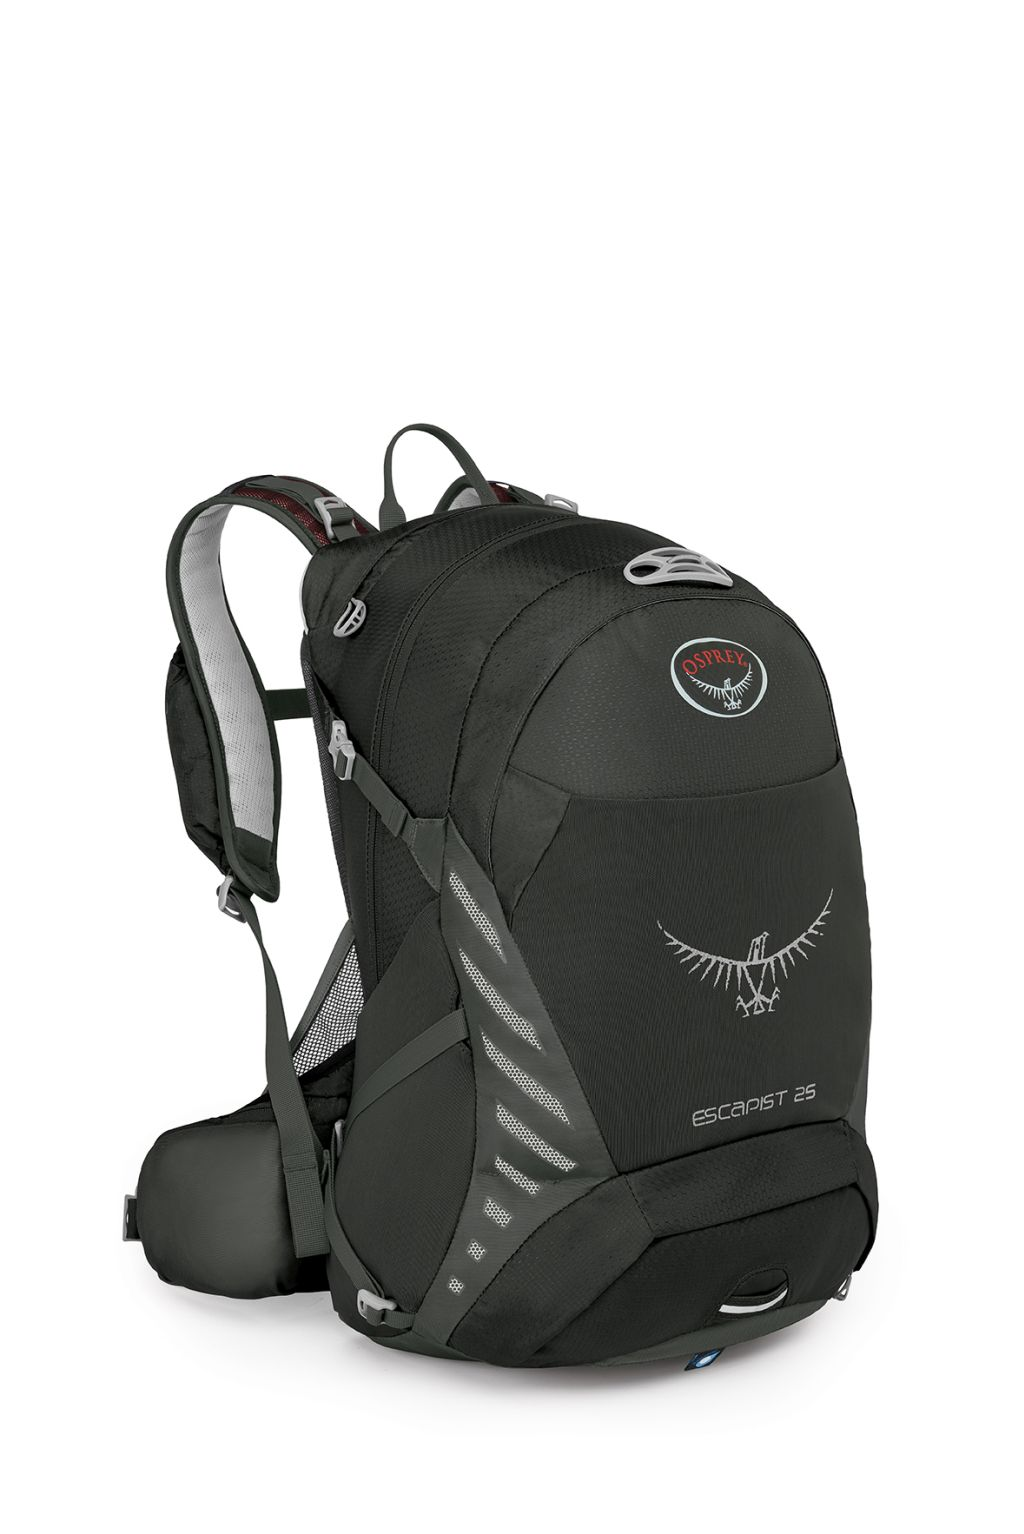 Osprey Escapist 25 Black-30